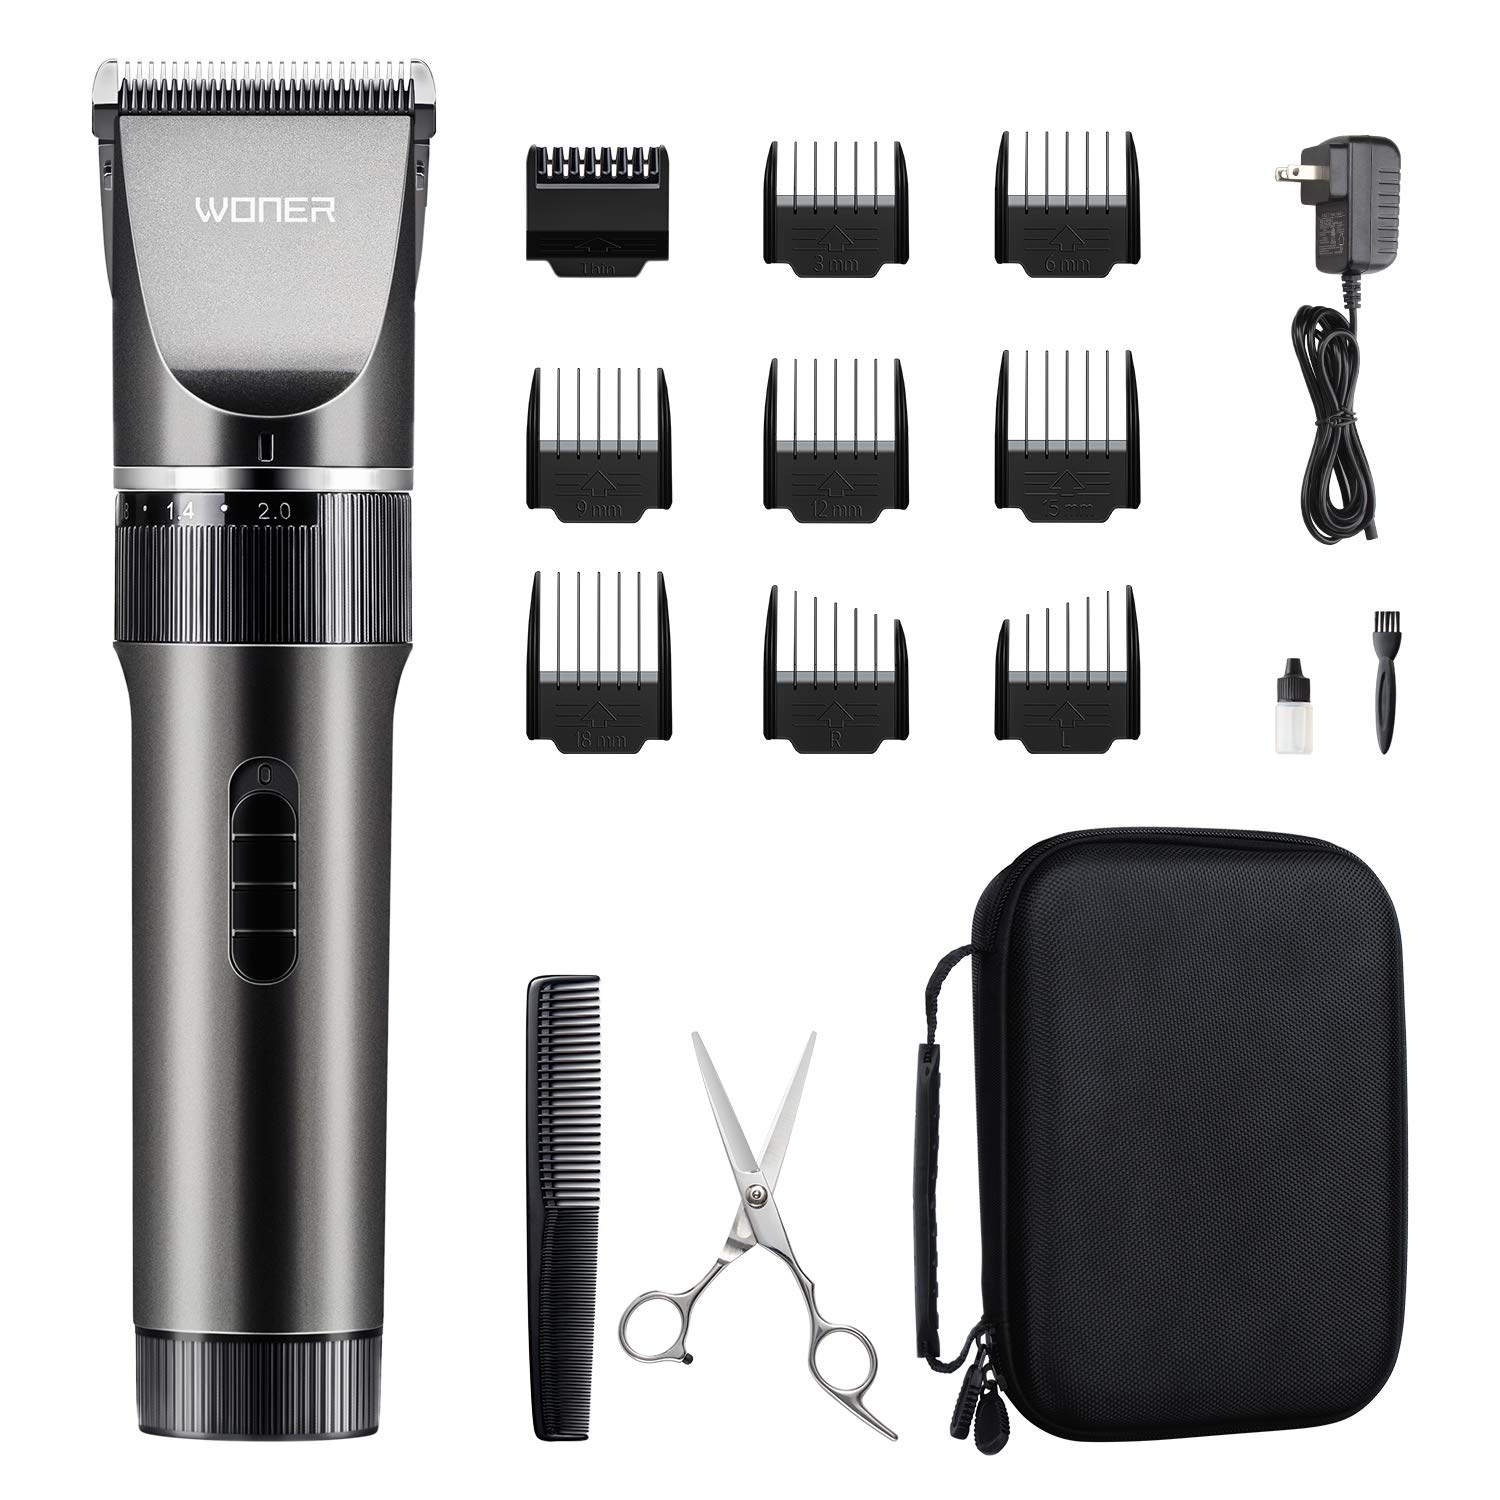 WONER Cordless Rechargeable Clippers Trimmers